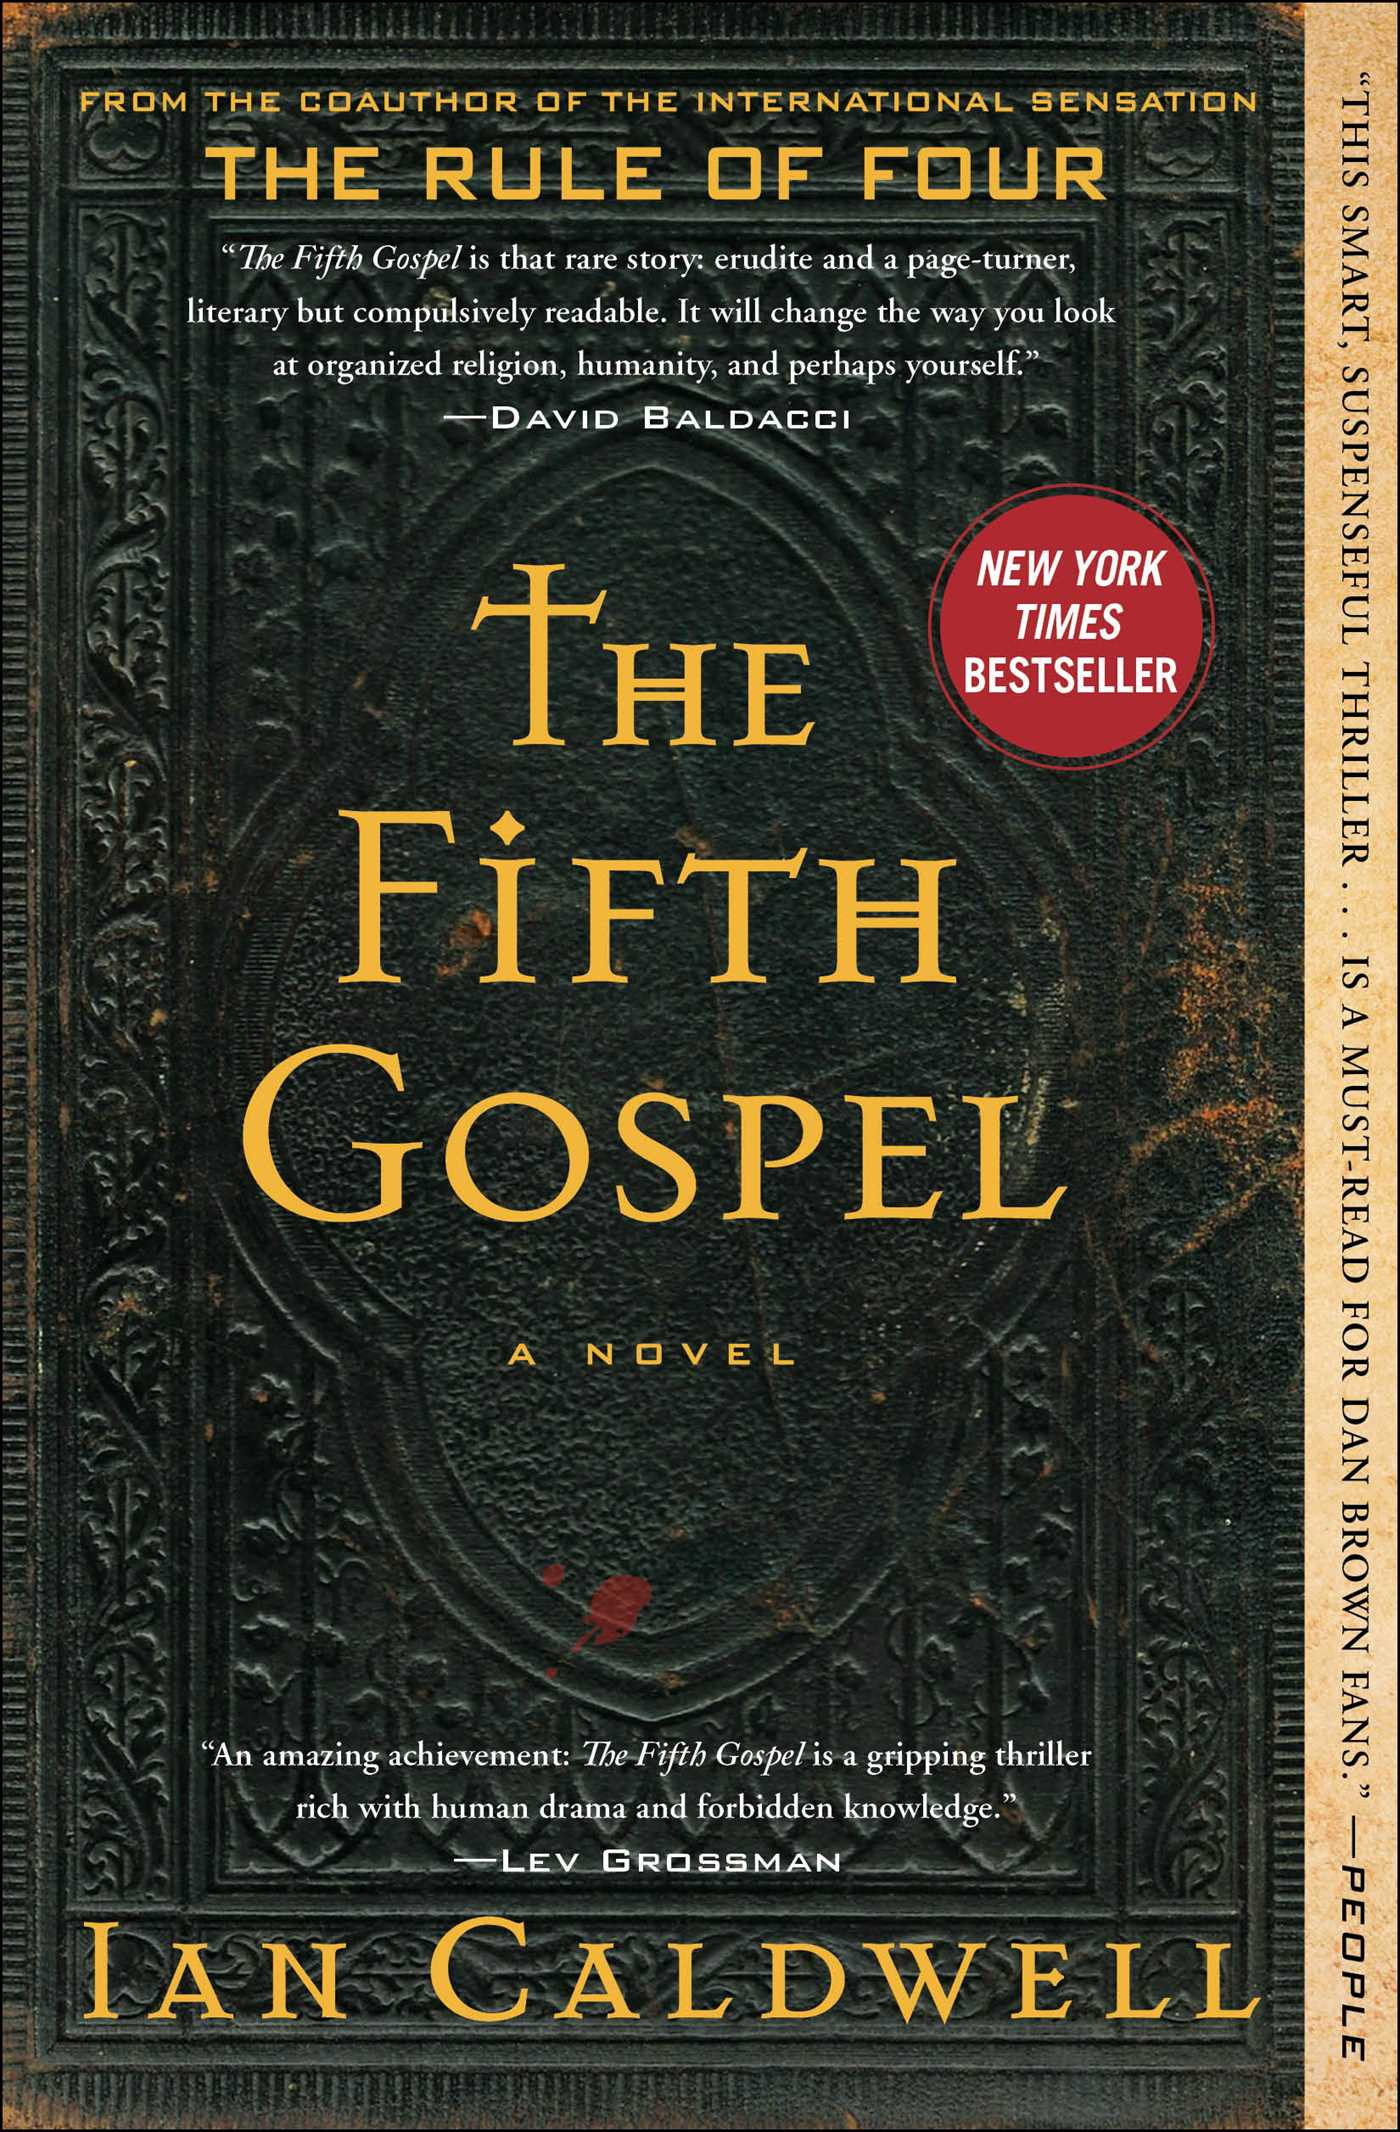 Doing a Research Paper on Changes in Gospel Content...please help?